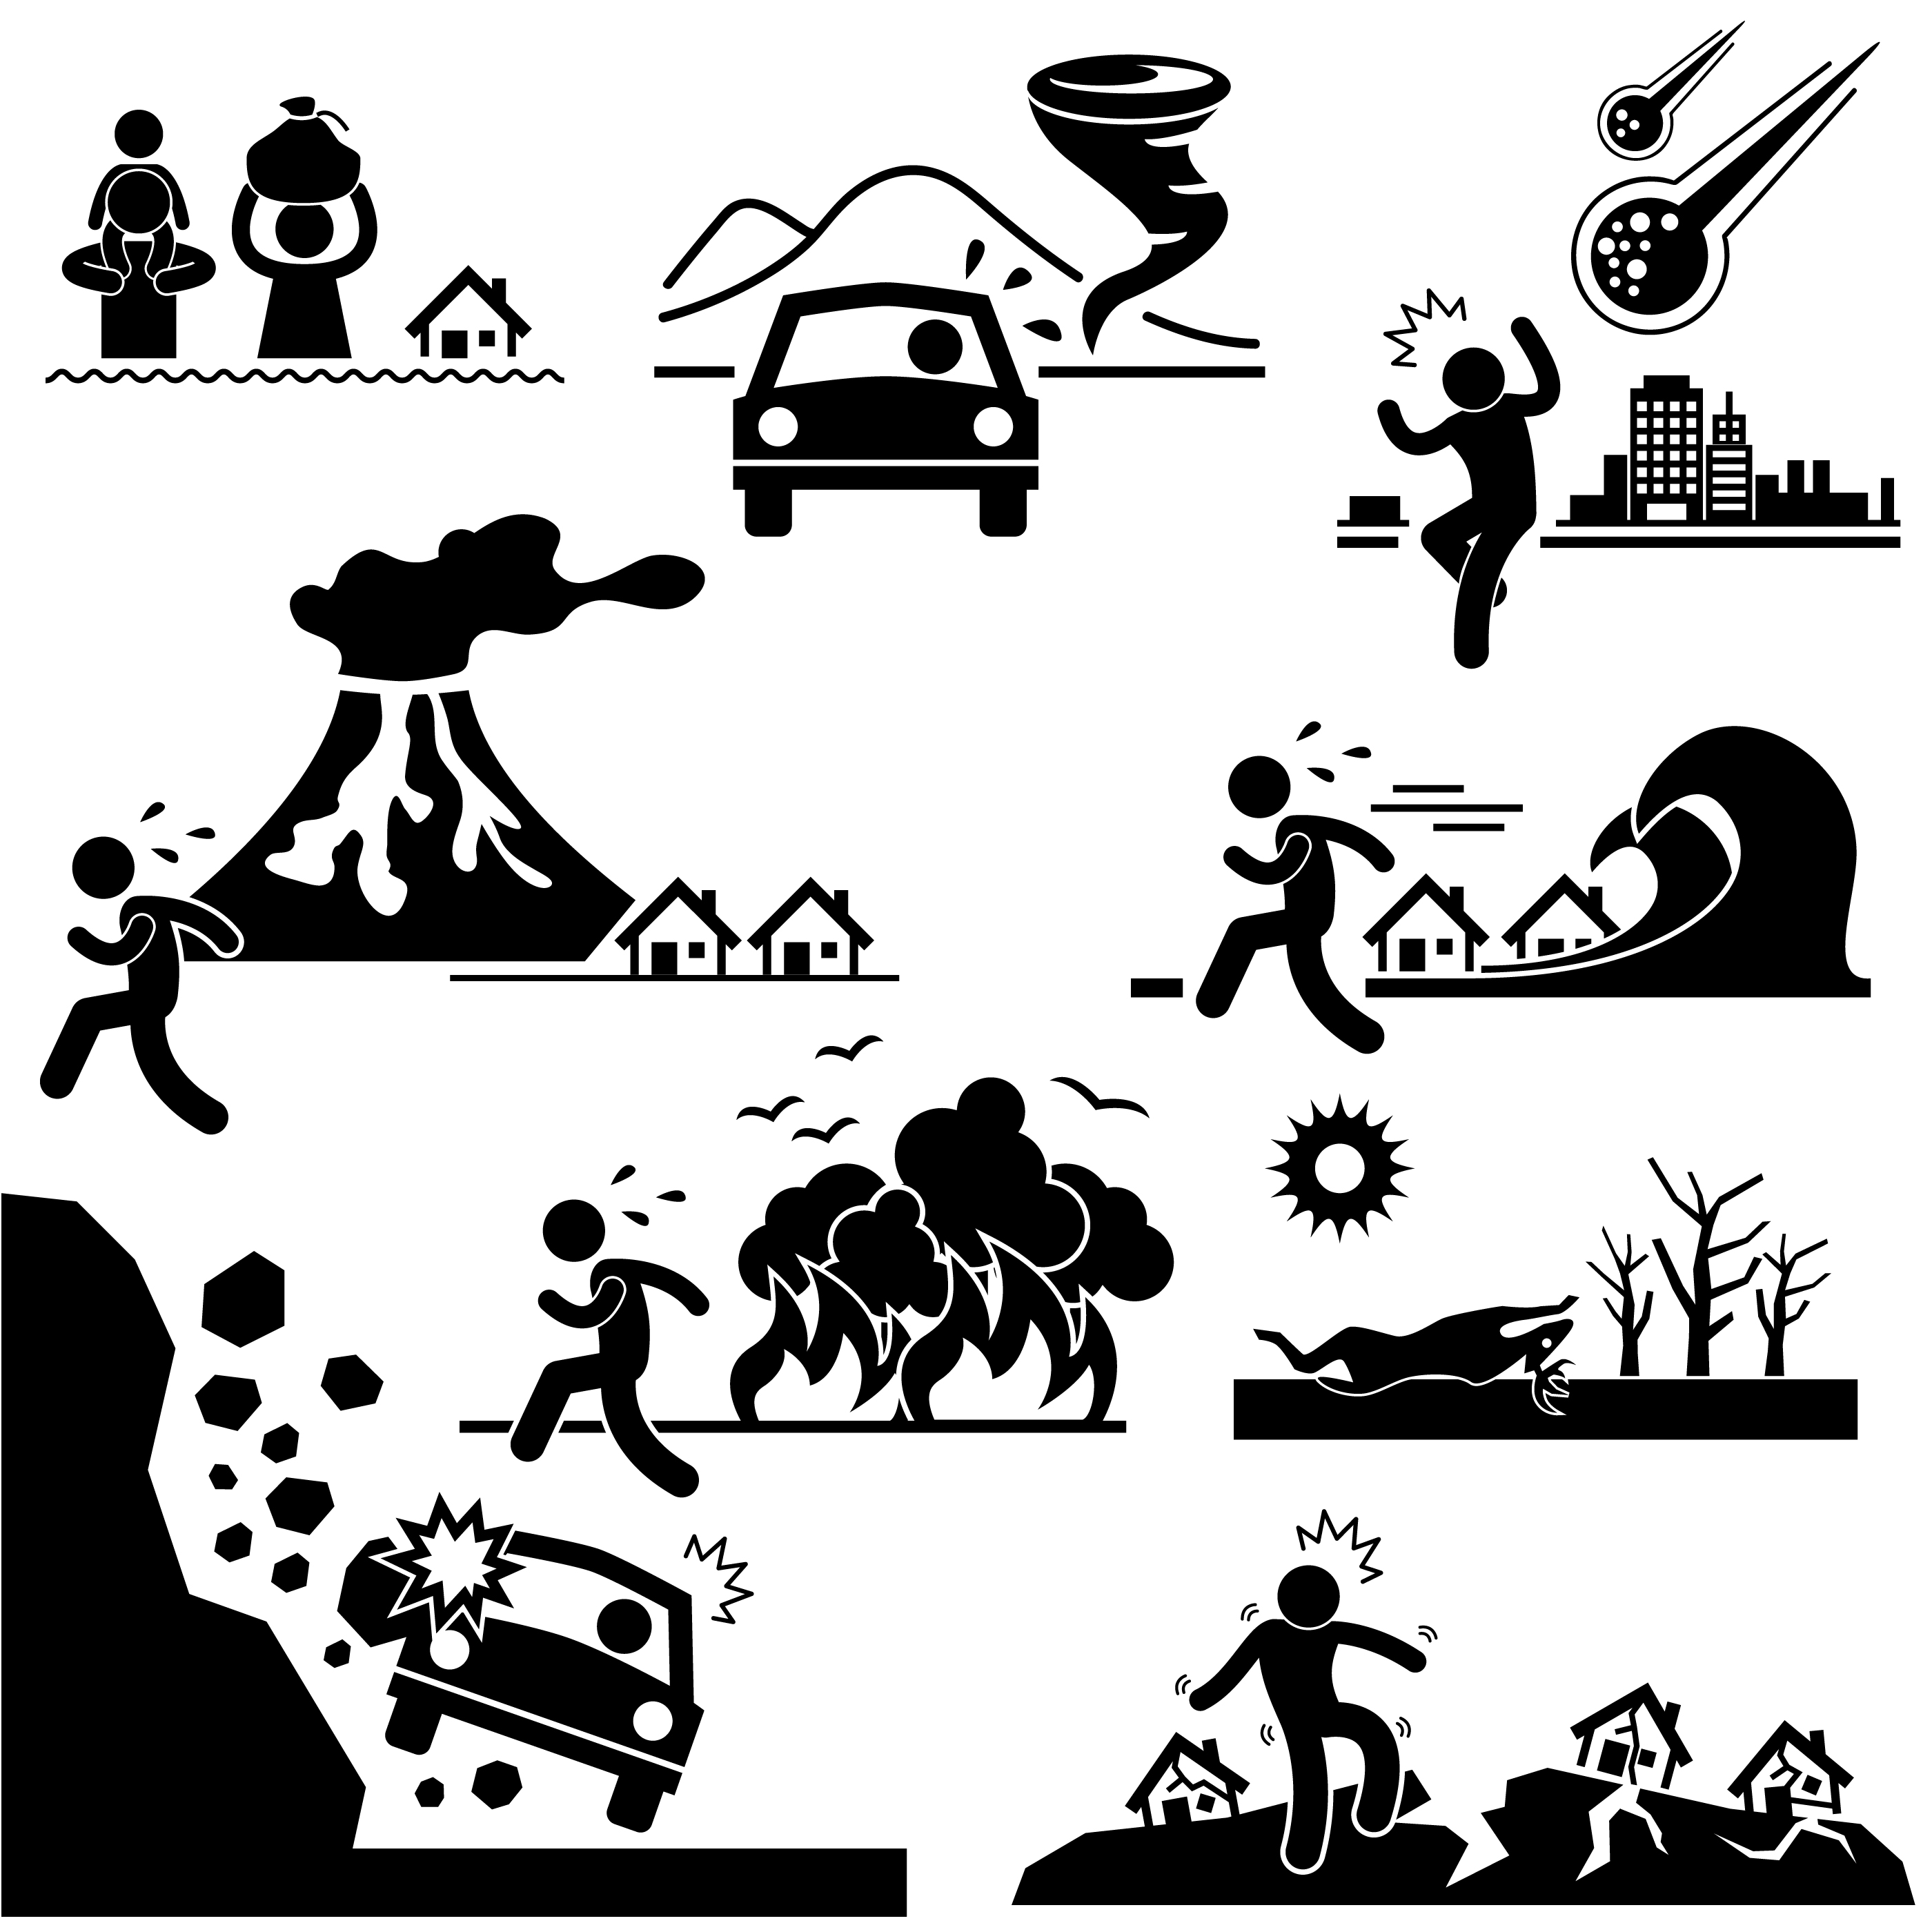 Disaster Doomsday Catastrophe Stick Figure Pictogram Icon.